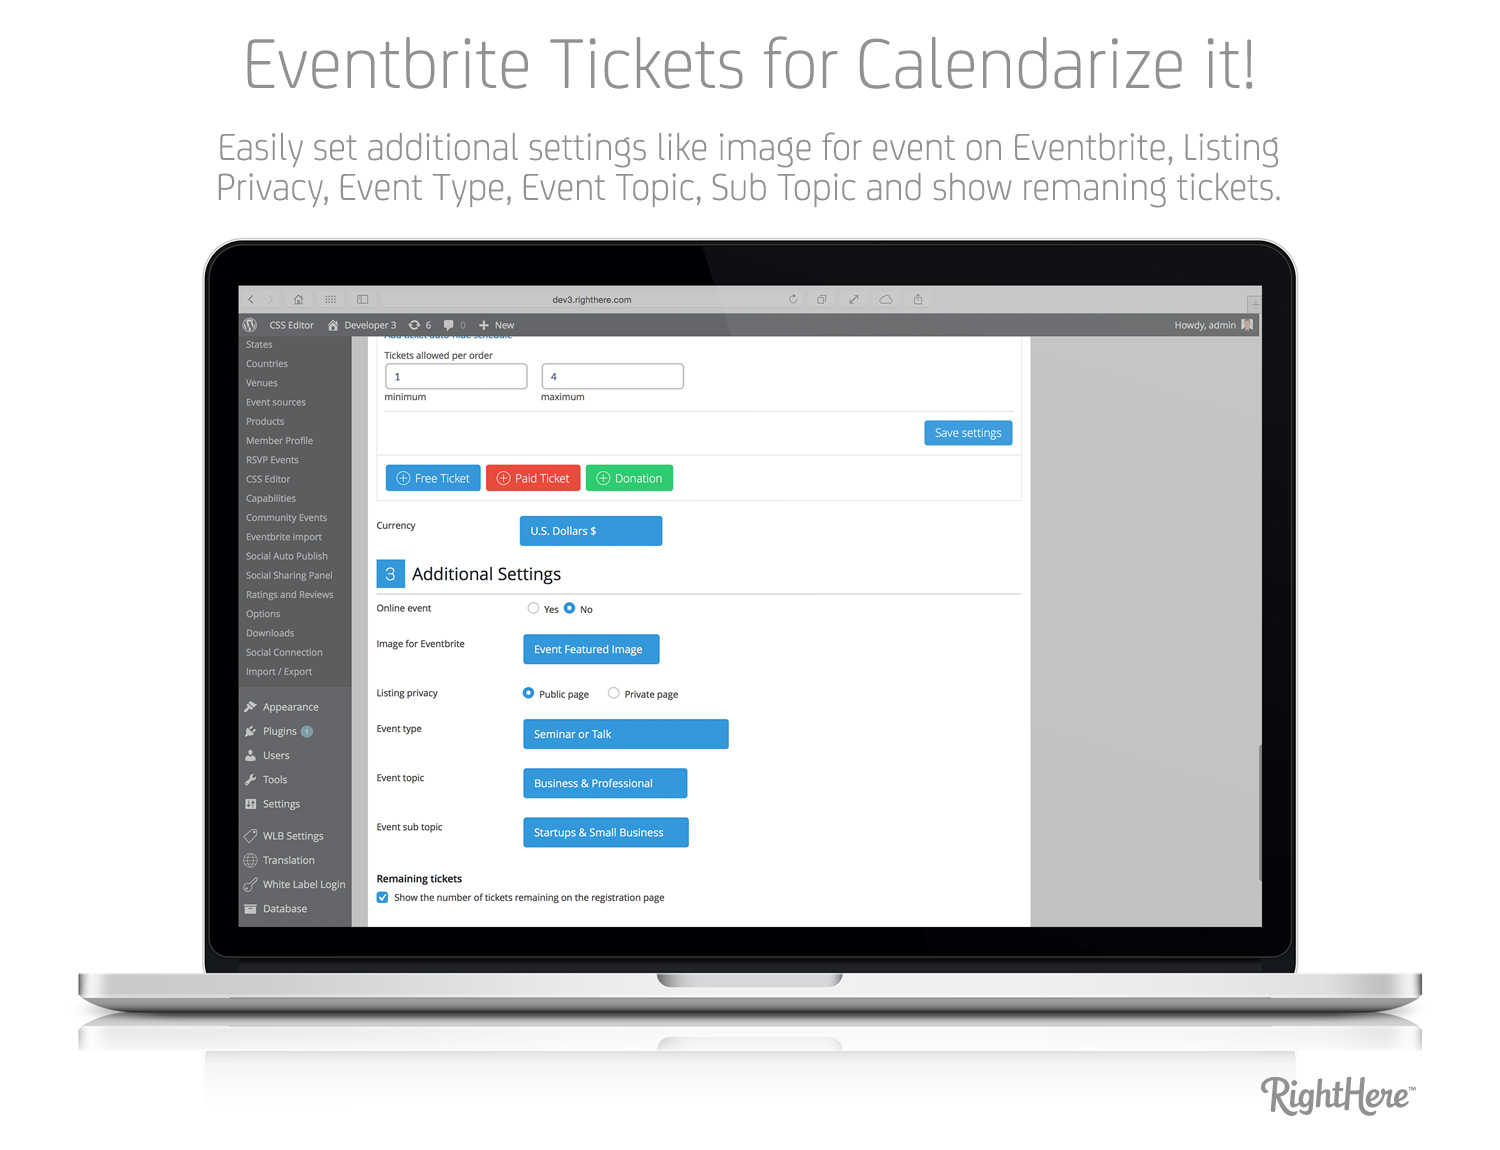 Eventbrite Tickets for Calendarize it! - Additional Settings